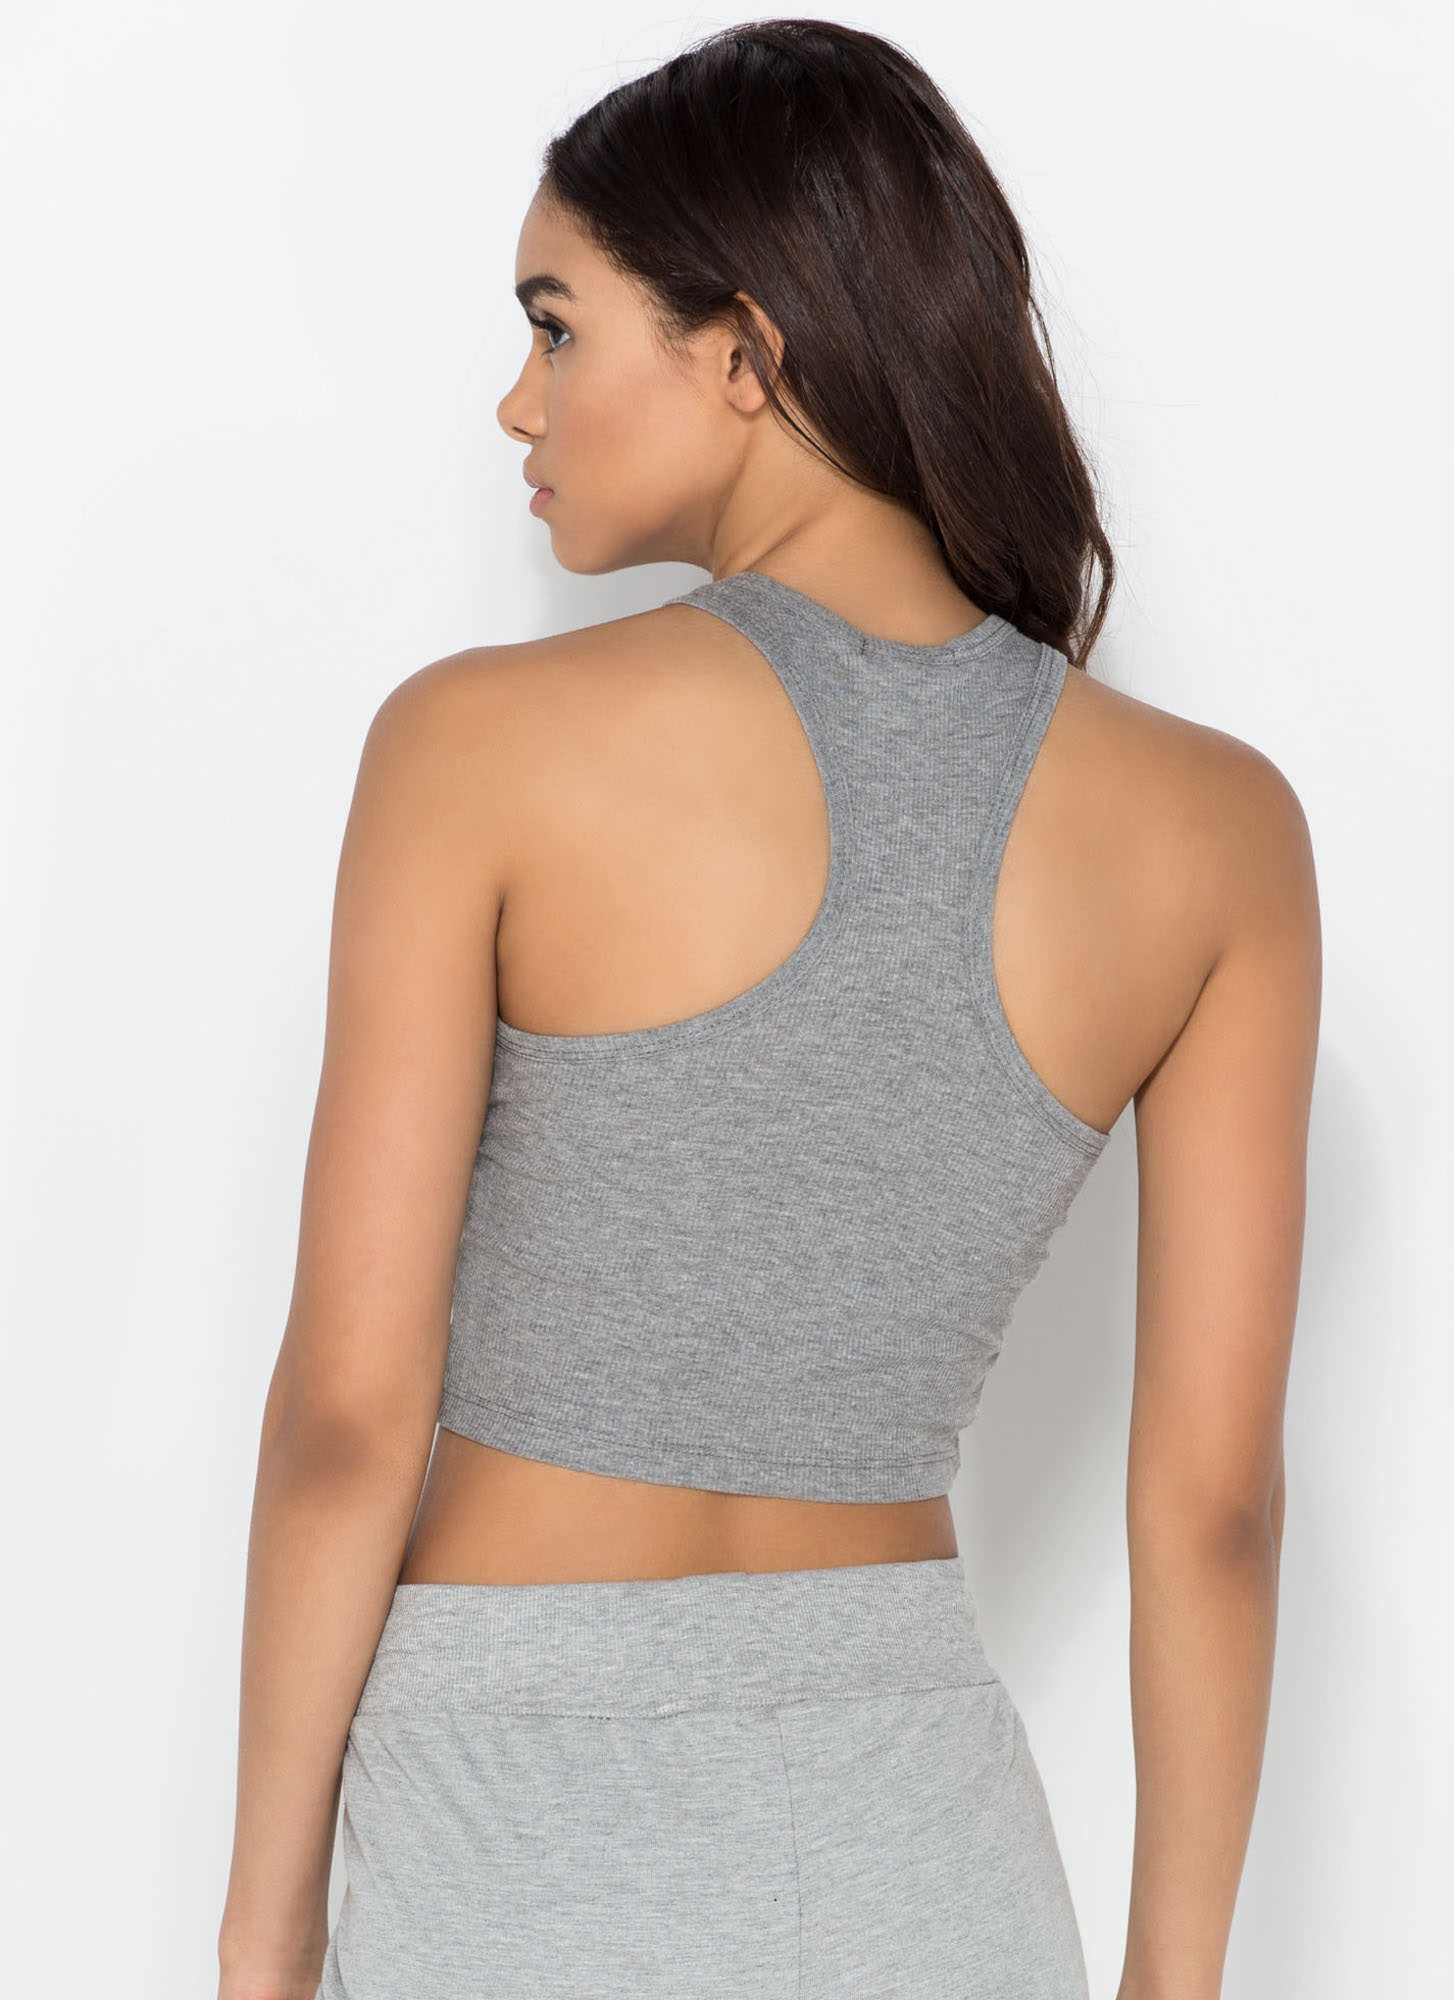 Knit It 'N Quit It Crop Top HGREY